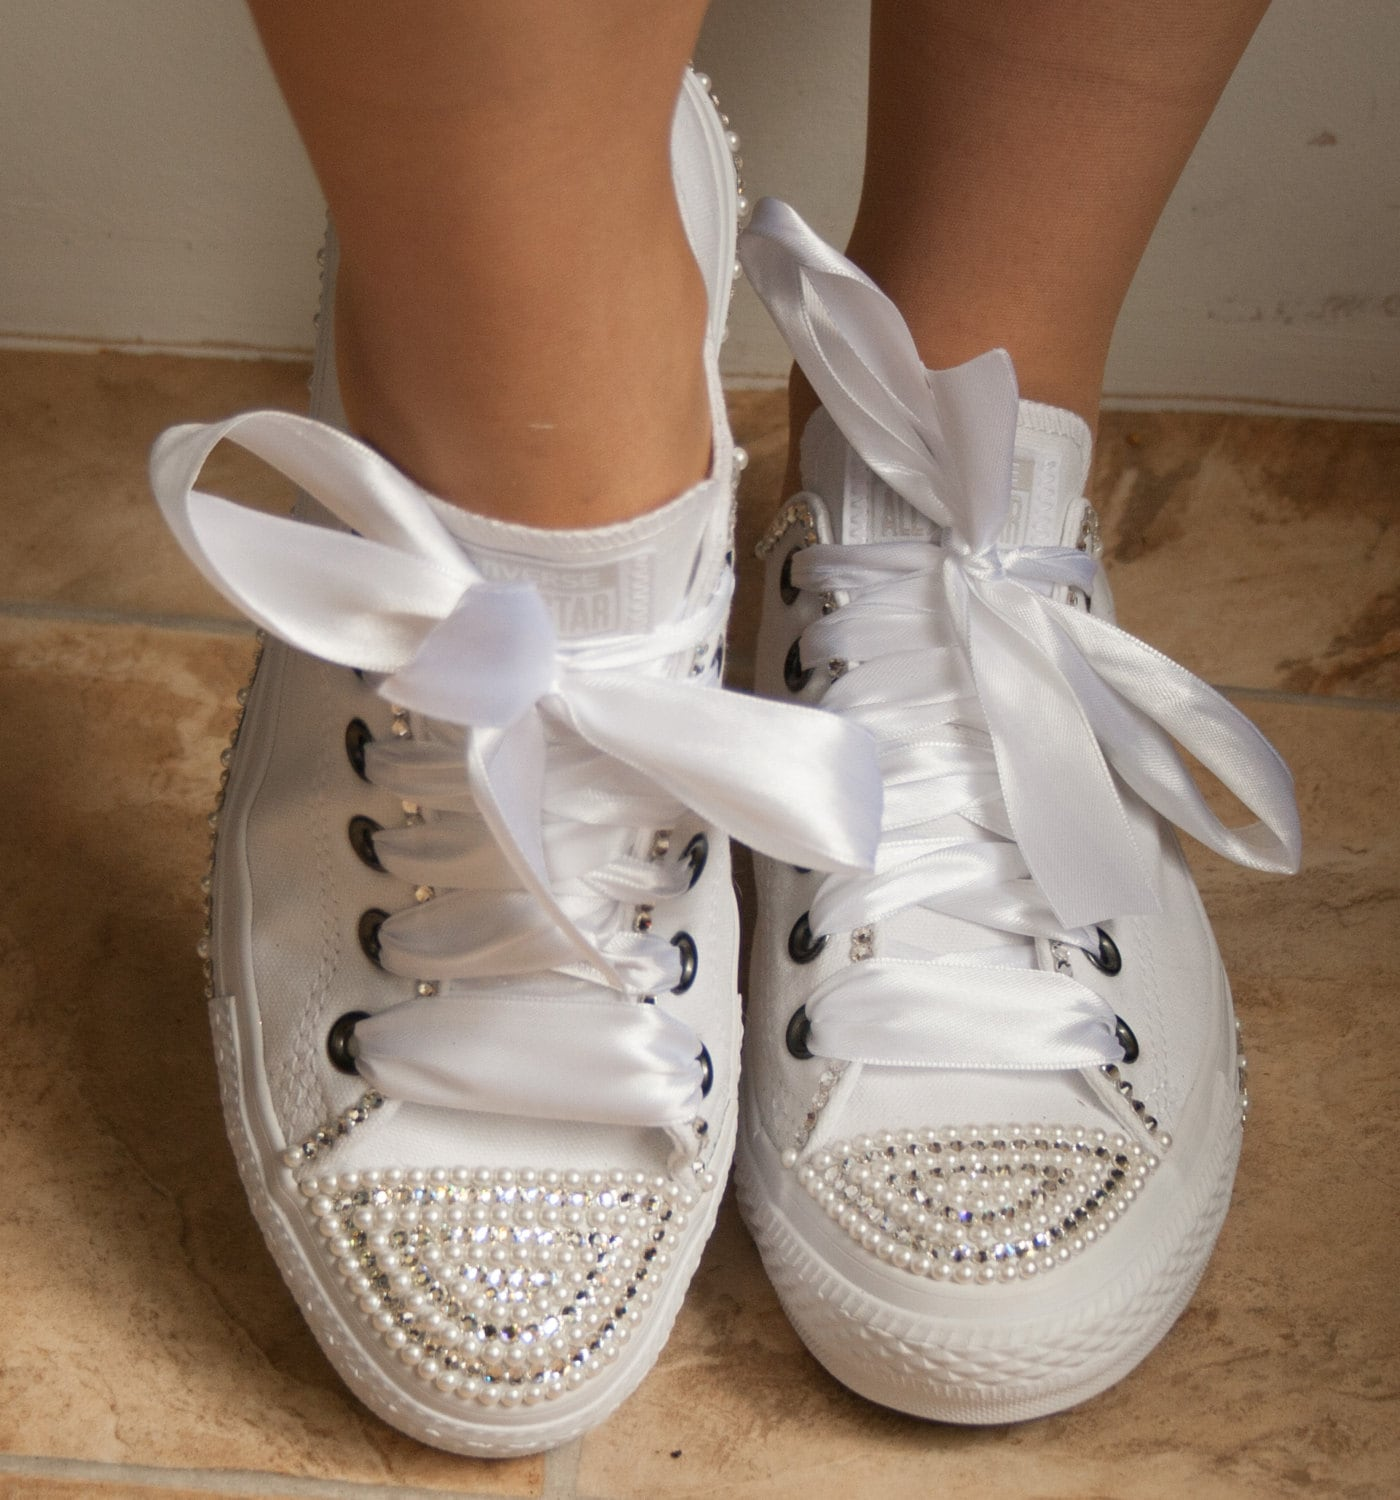 wedding converse trainers with  crystals and pearls. Wedding trainers wedding converse bridal Converse customized wedding converse